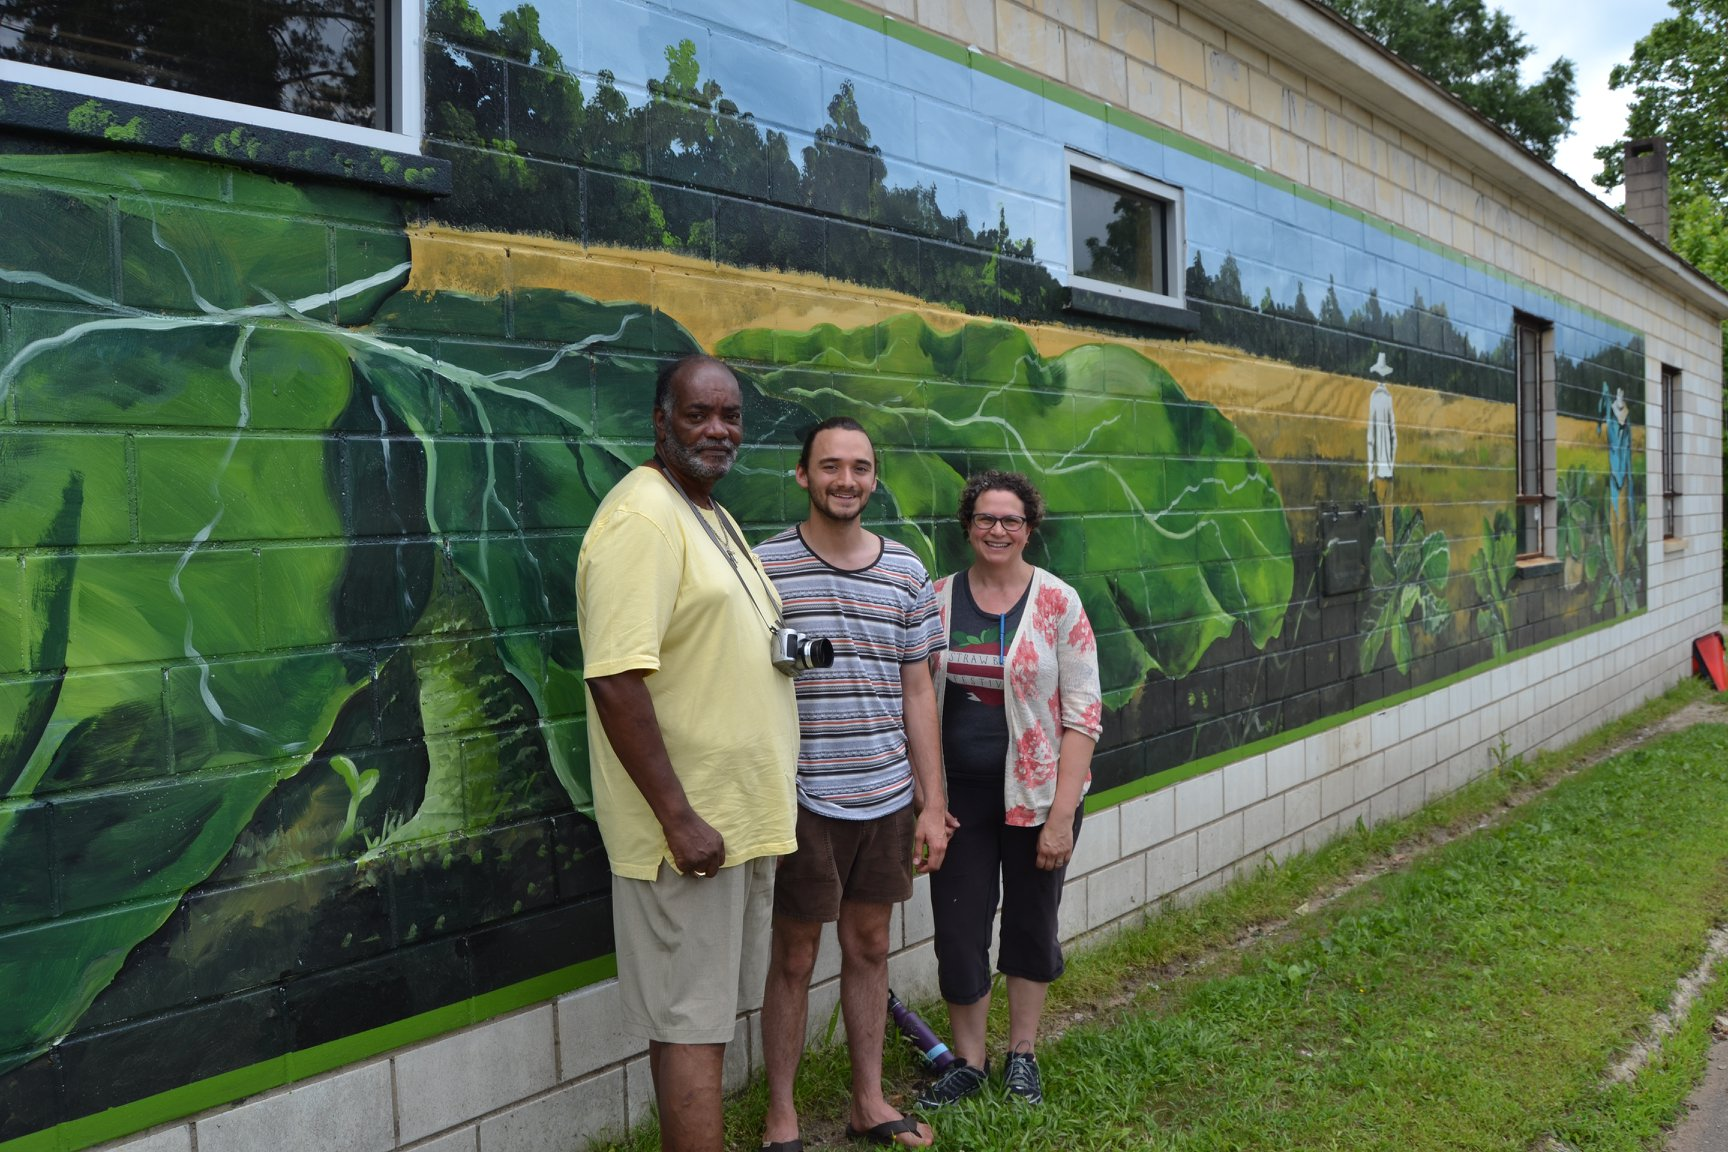 Pictured left to right: Muralist Napoleon Hill, Arts Council Board Member Alex Borst, and Working Landscapes Executive Director Carla Norwood stand in front of the mural on the Working Landscapes Produce Center, a project funded through the Grassroots Grant Program in 2018